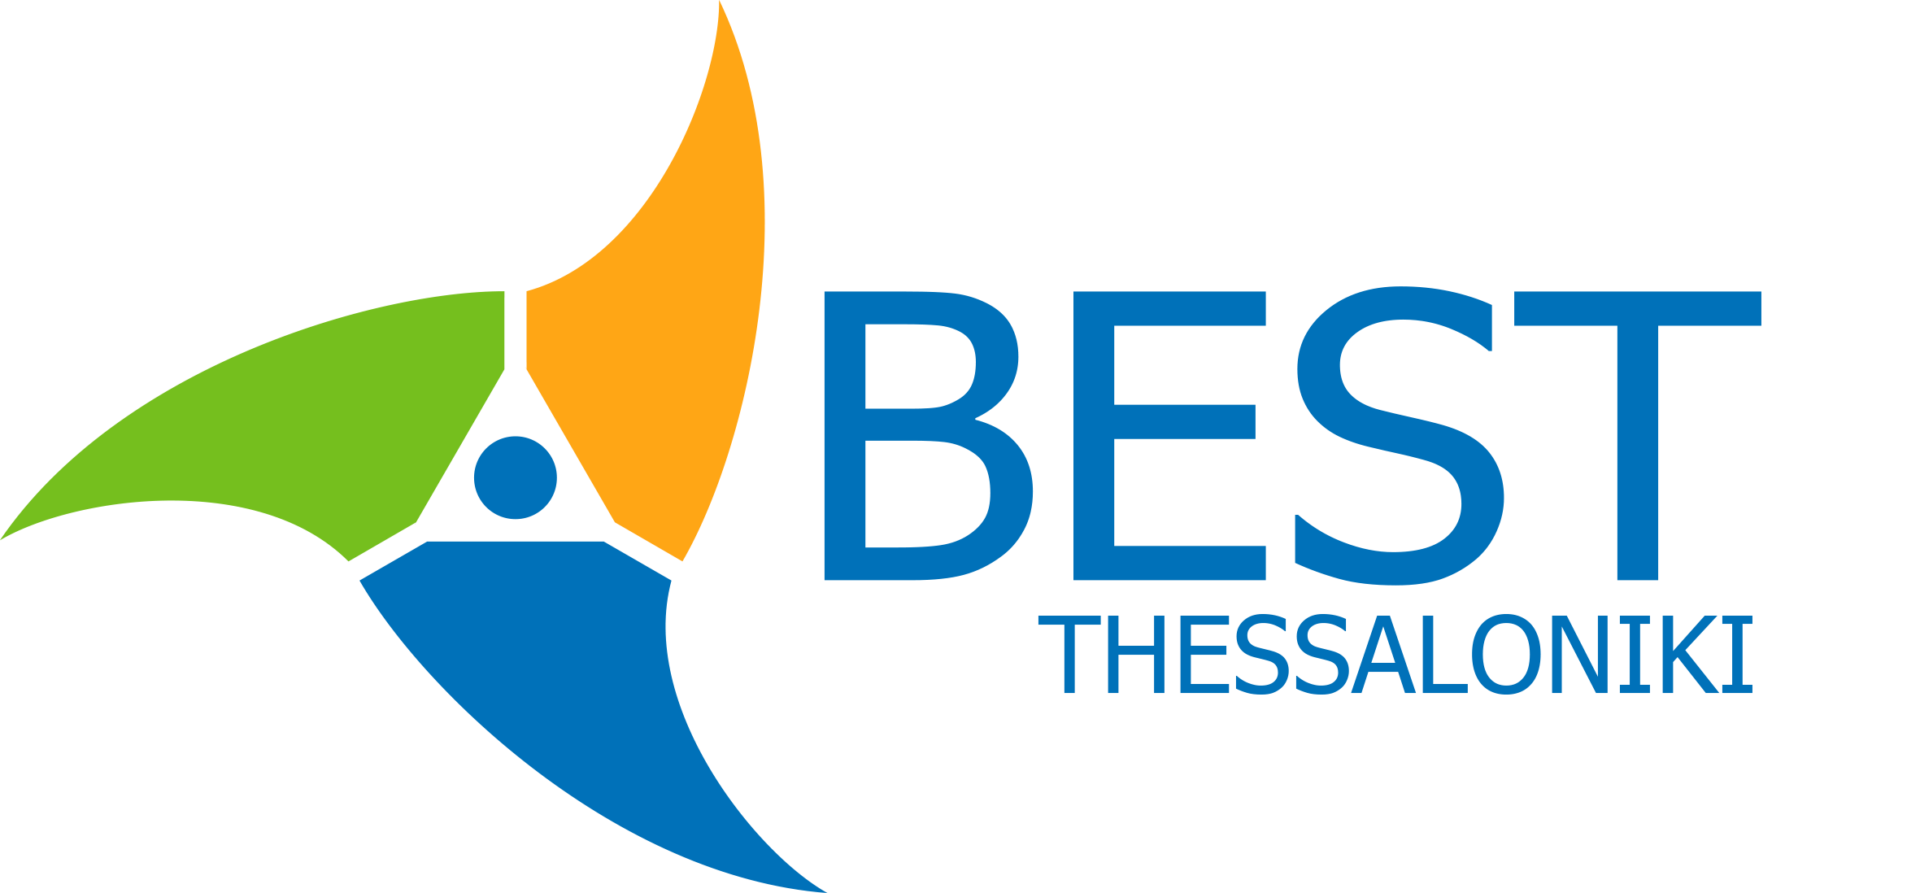 BEST Thessaloniki logo